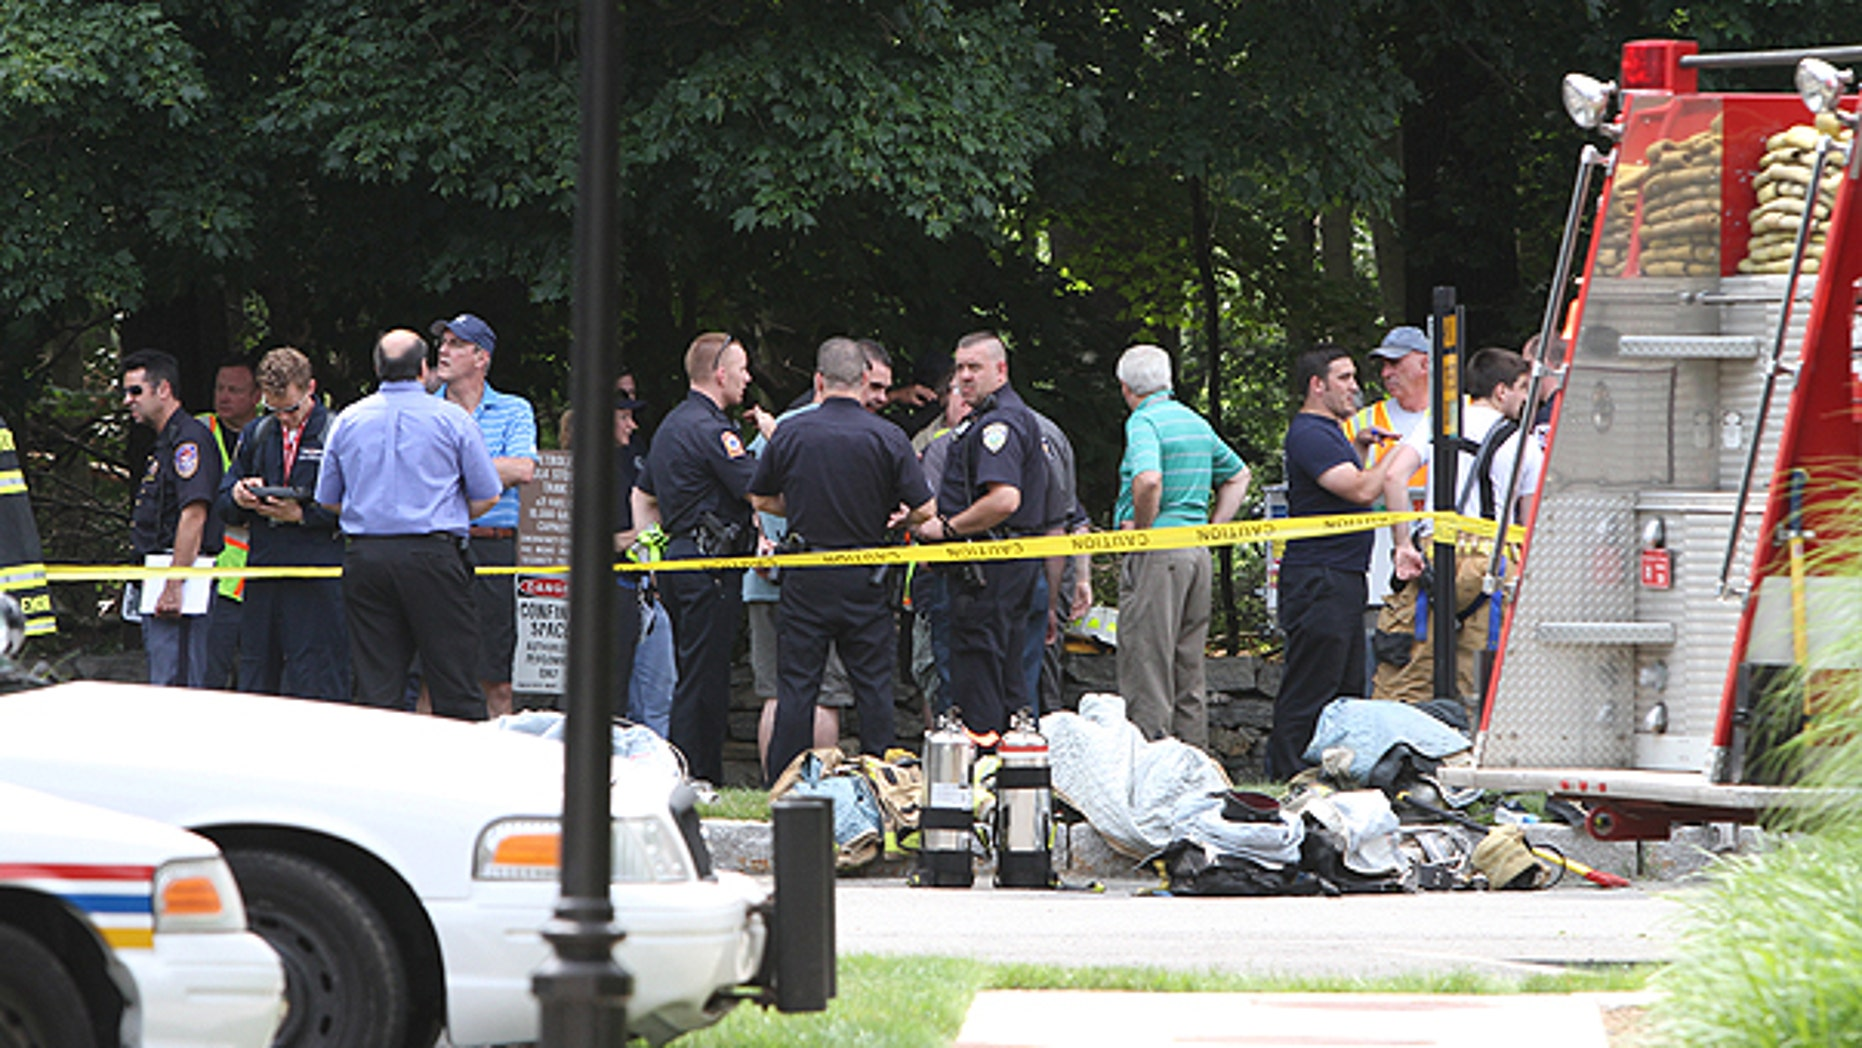 June 18: Various police and fire agencies work at the nearby wreckage site of a small plane crash in Armonk, N.Y.